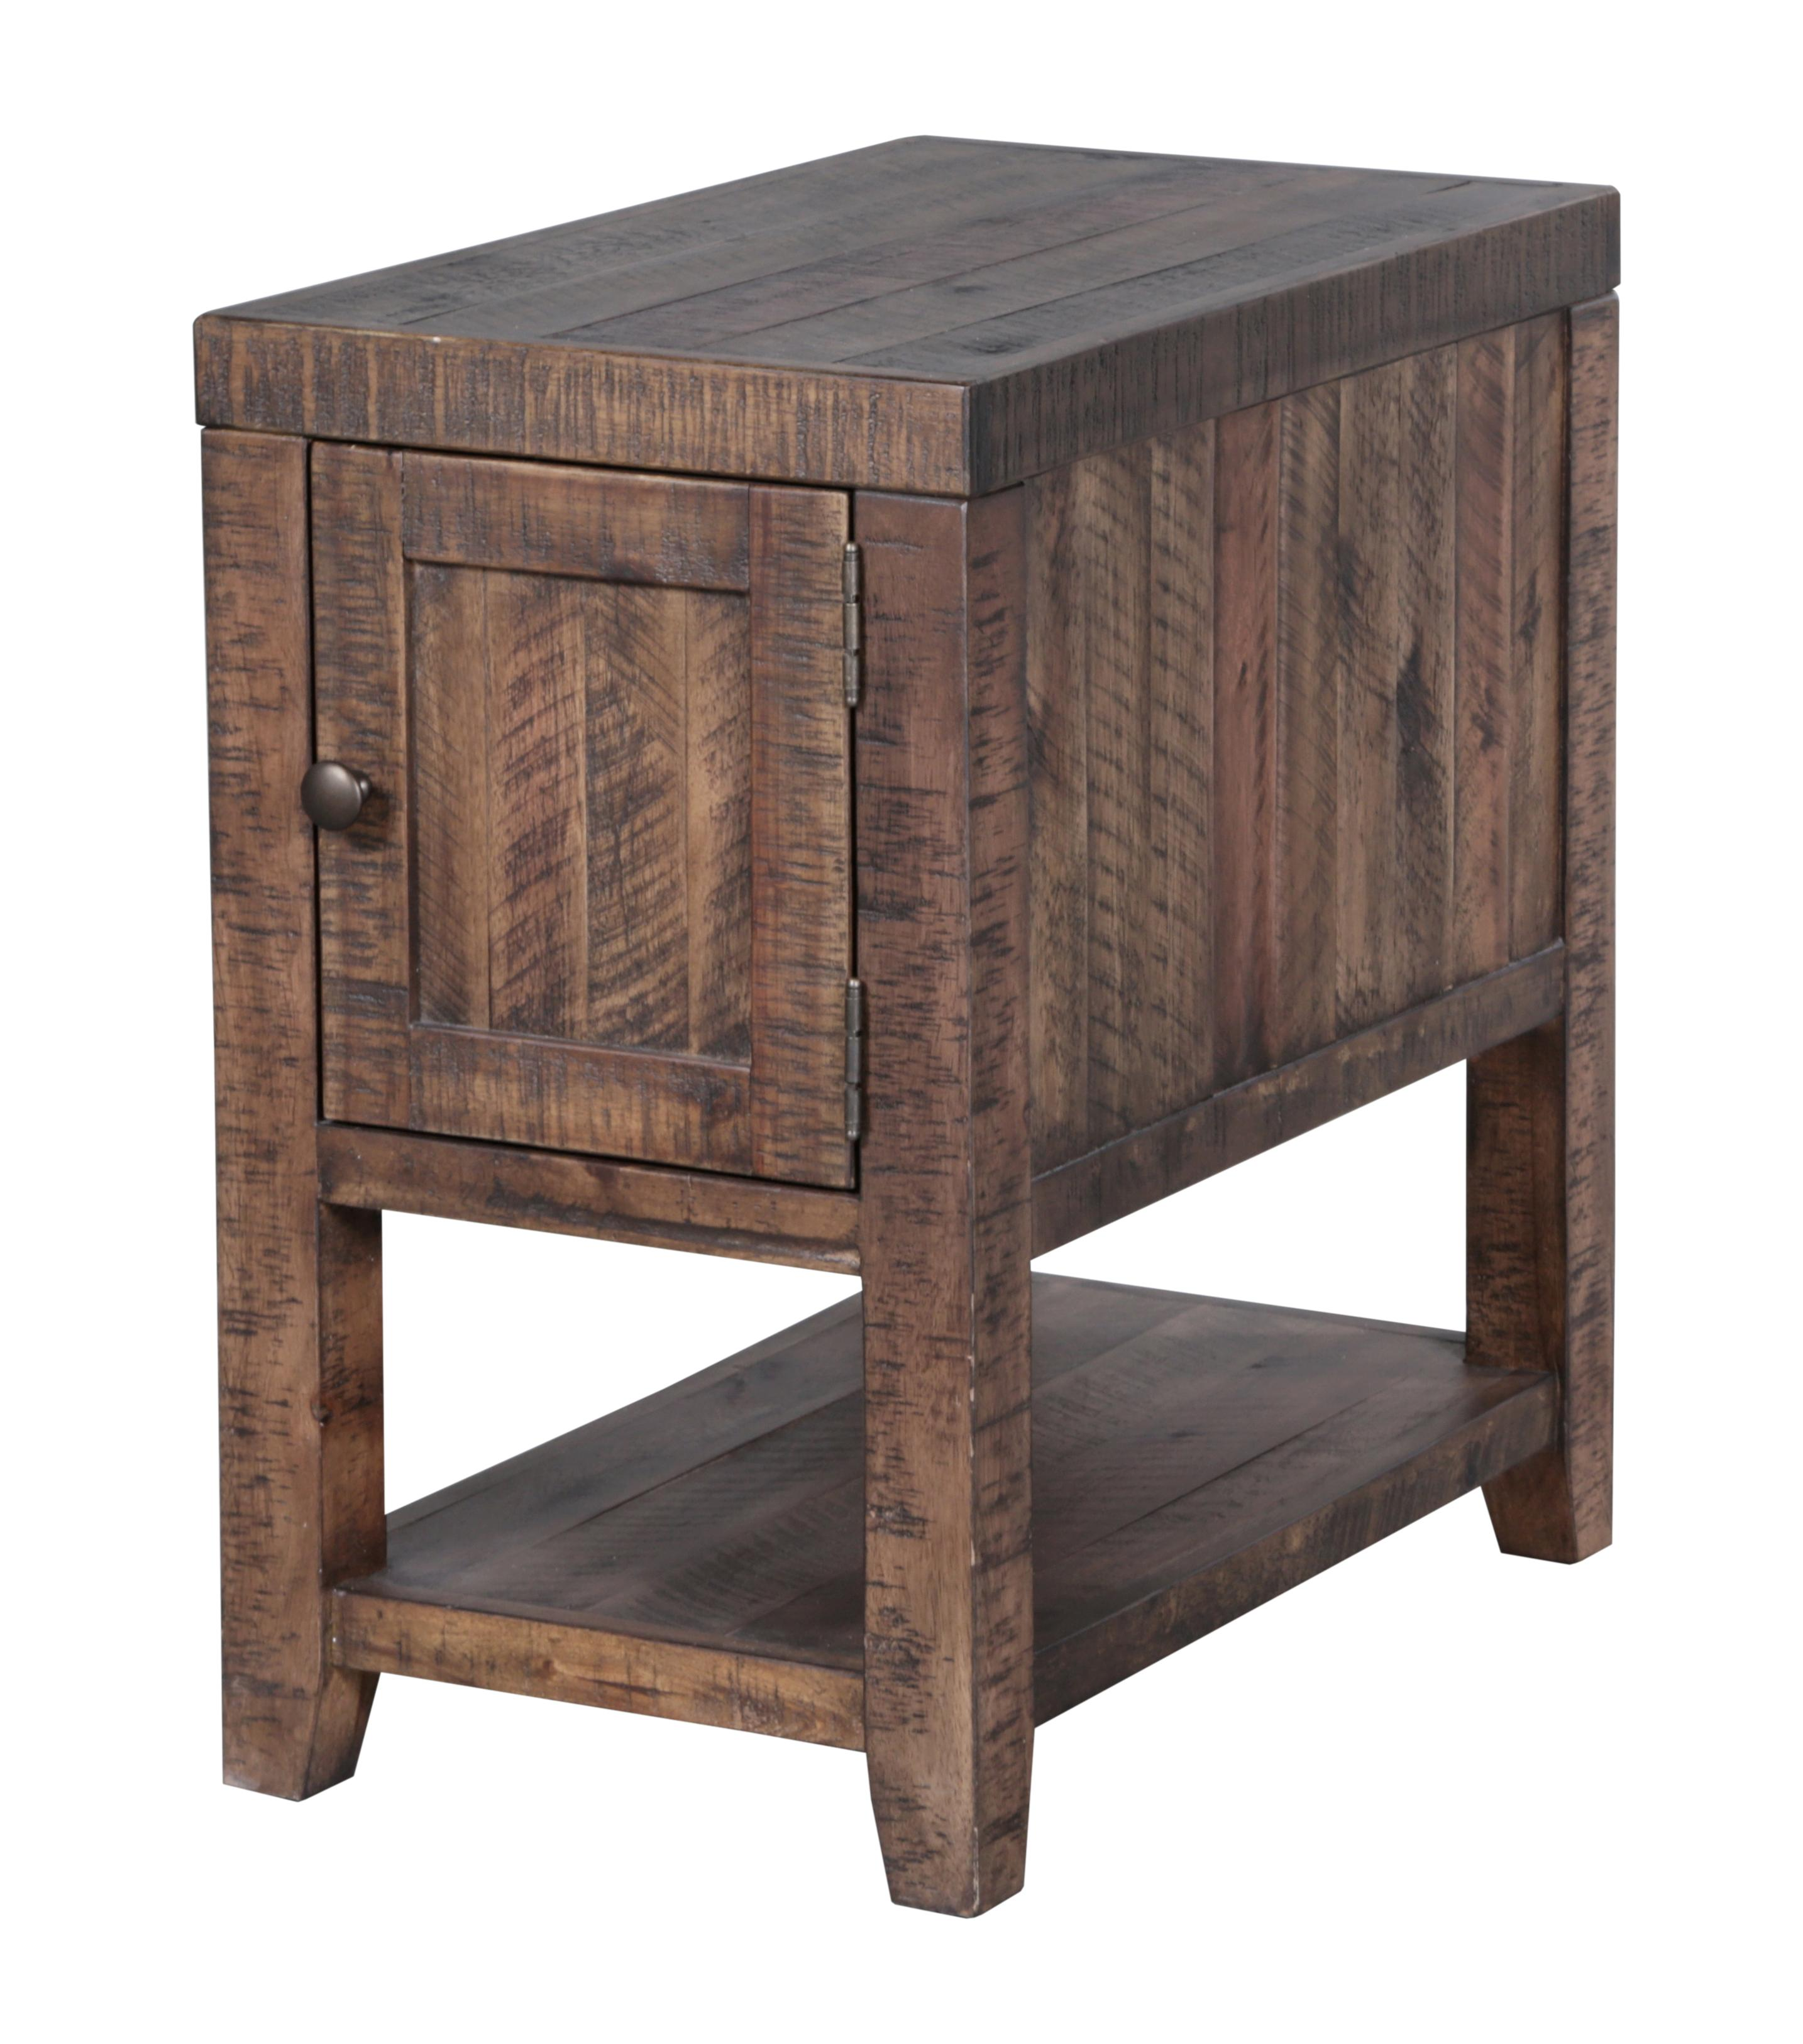 Caitlyn Rectangular Chairside Table by Magnussen Home at Baer's Furniture